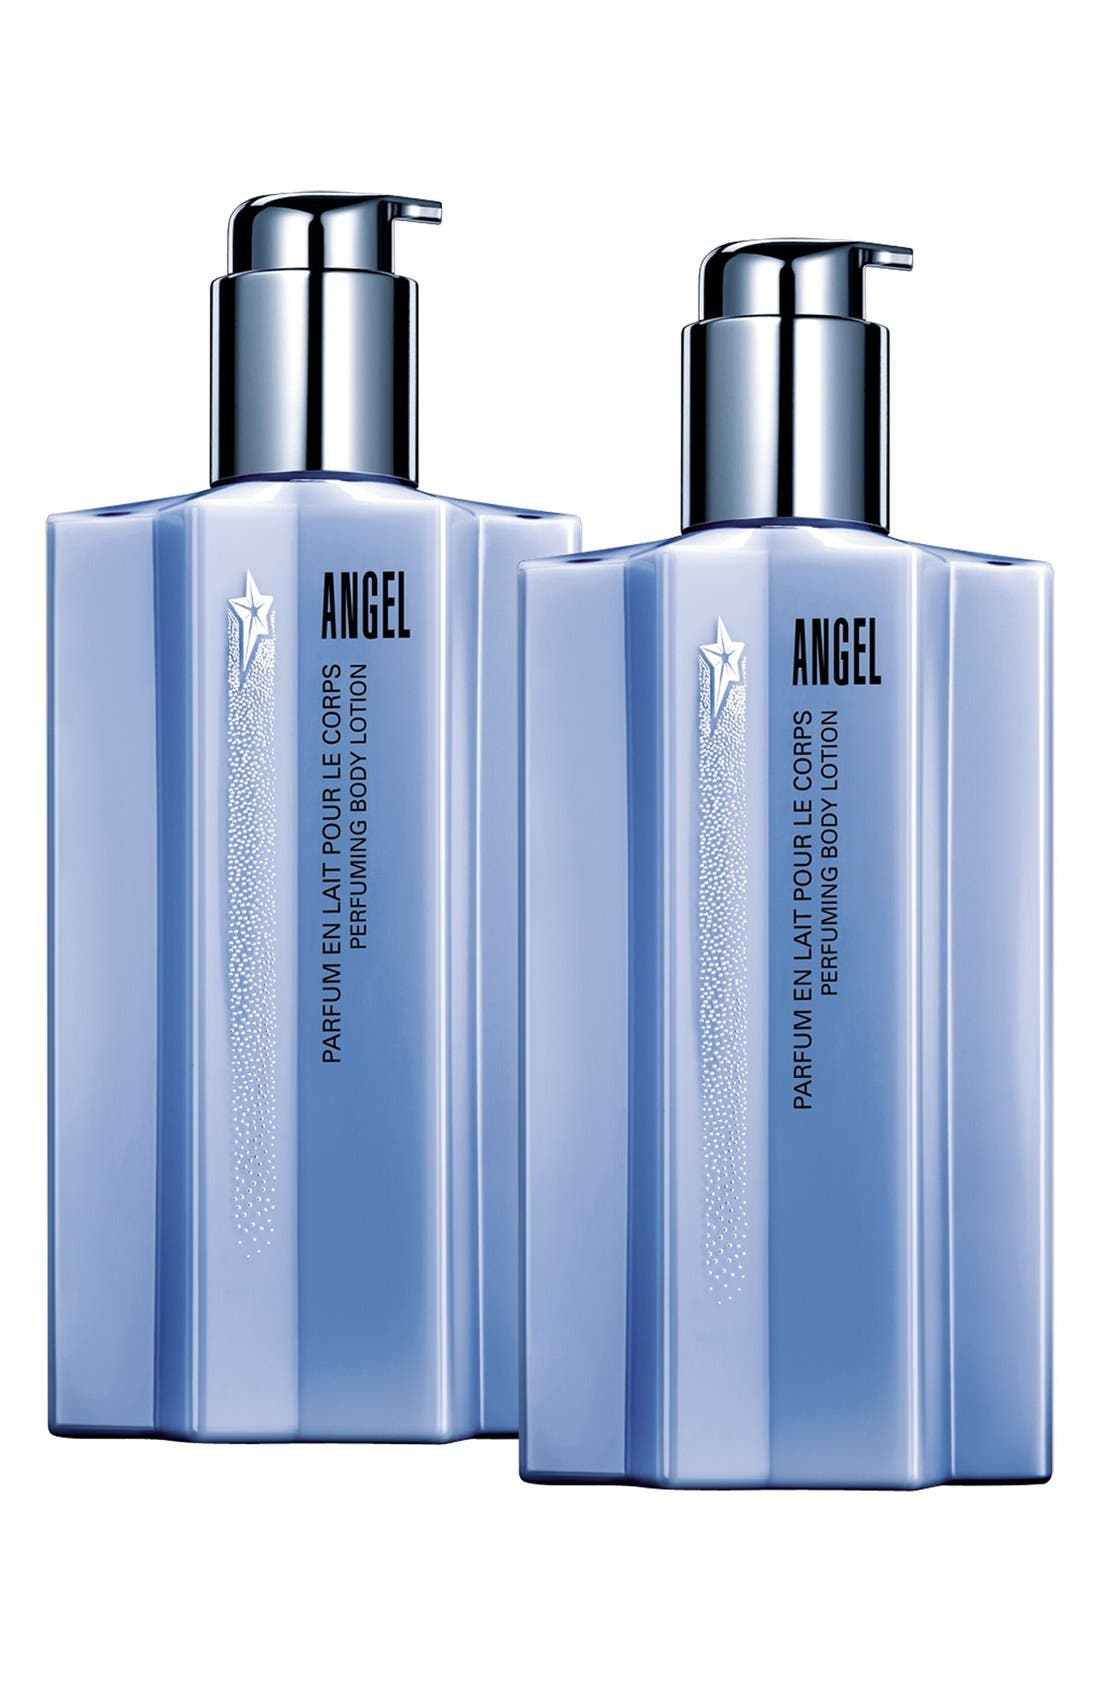 Angel by Mugler Double Indulgence Body Lotion Duo (Nordstrom Exclusive) ($110 Value)